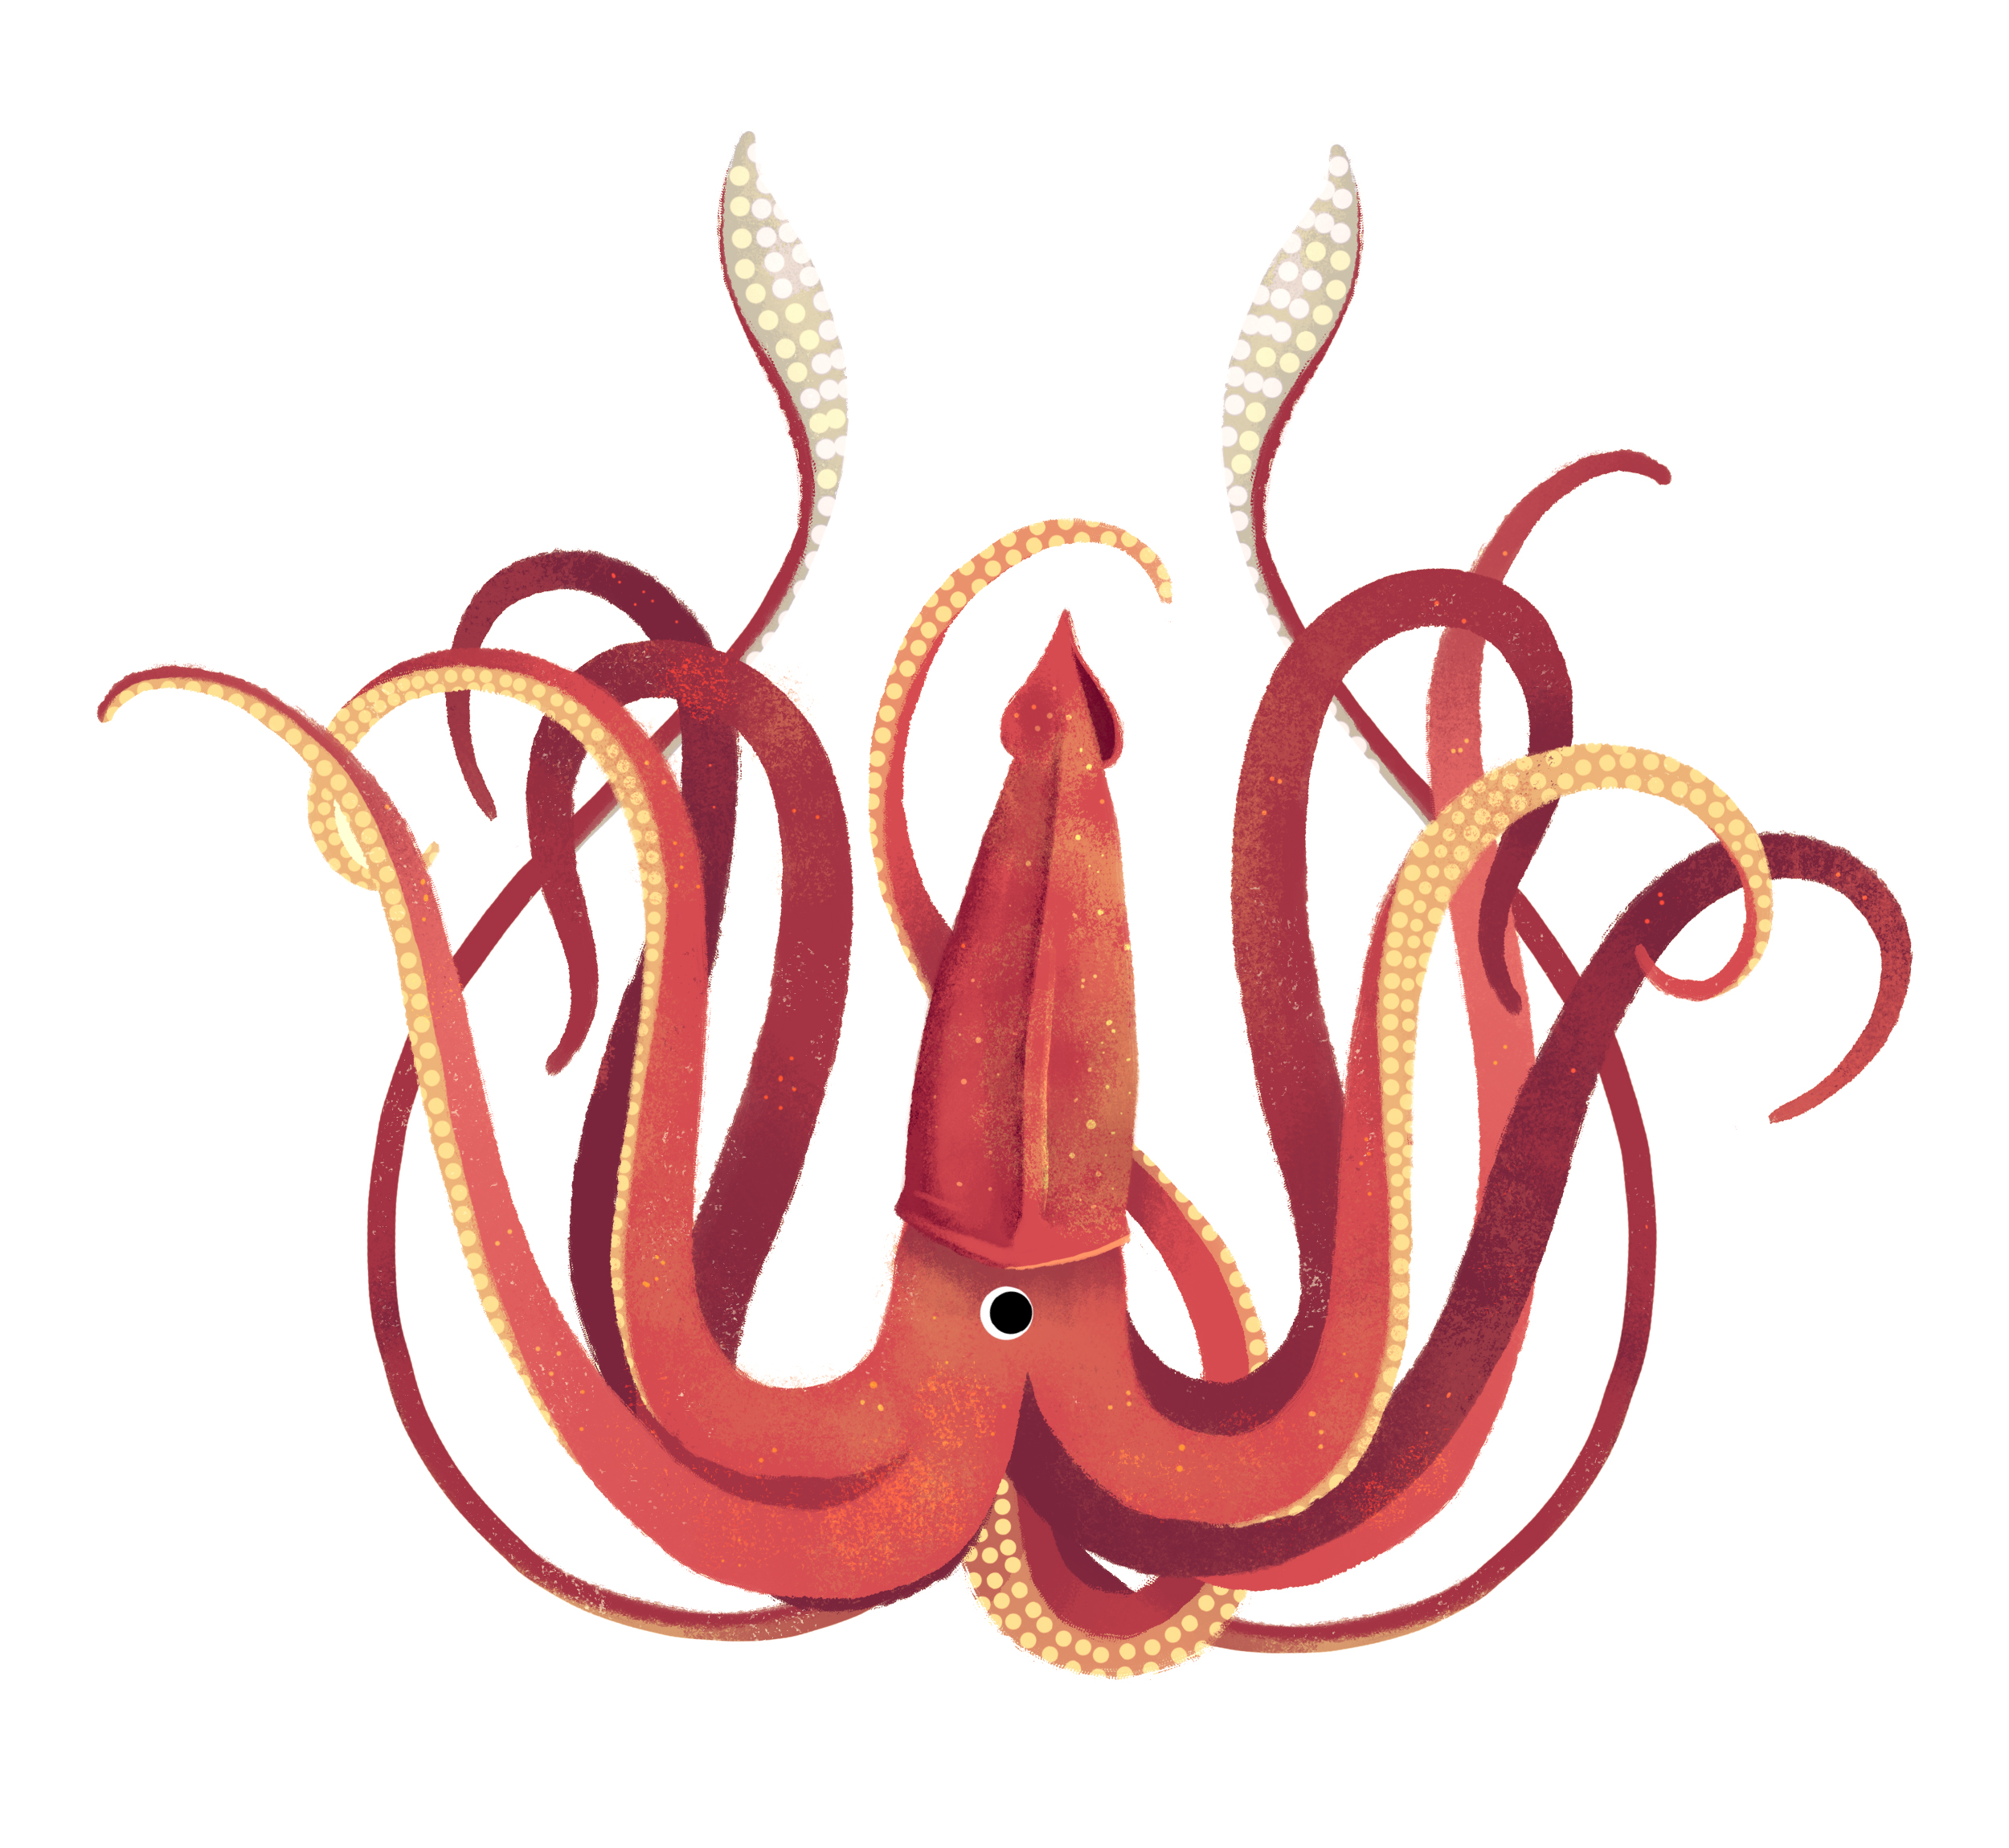 giantsquid.jpg